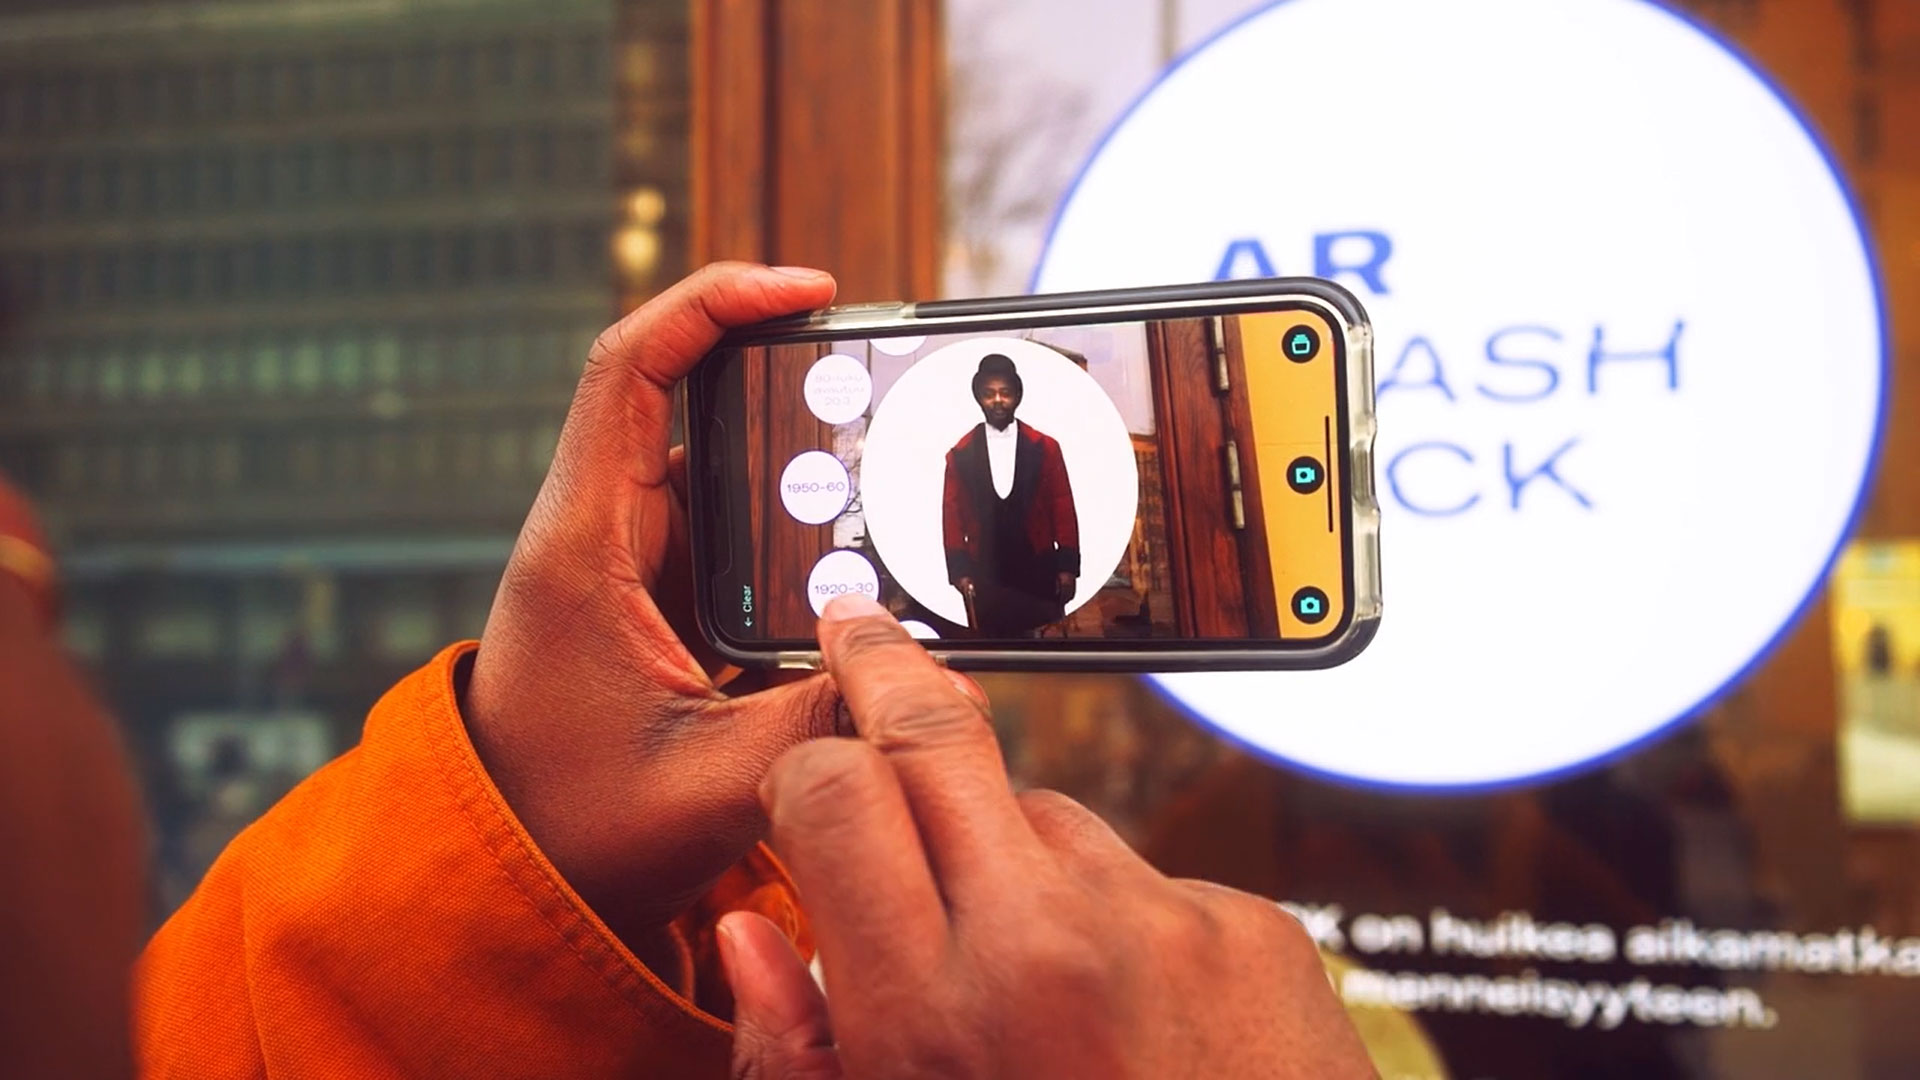 Art museum uses AR for time travel